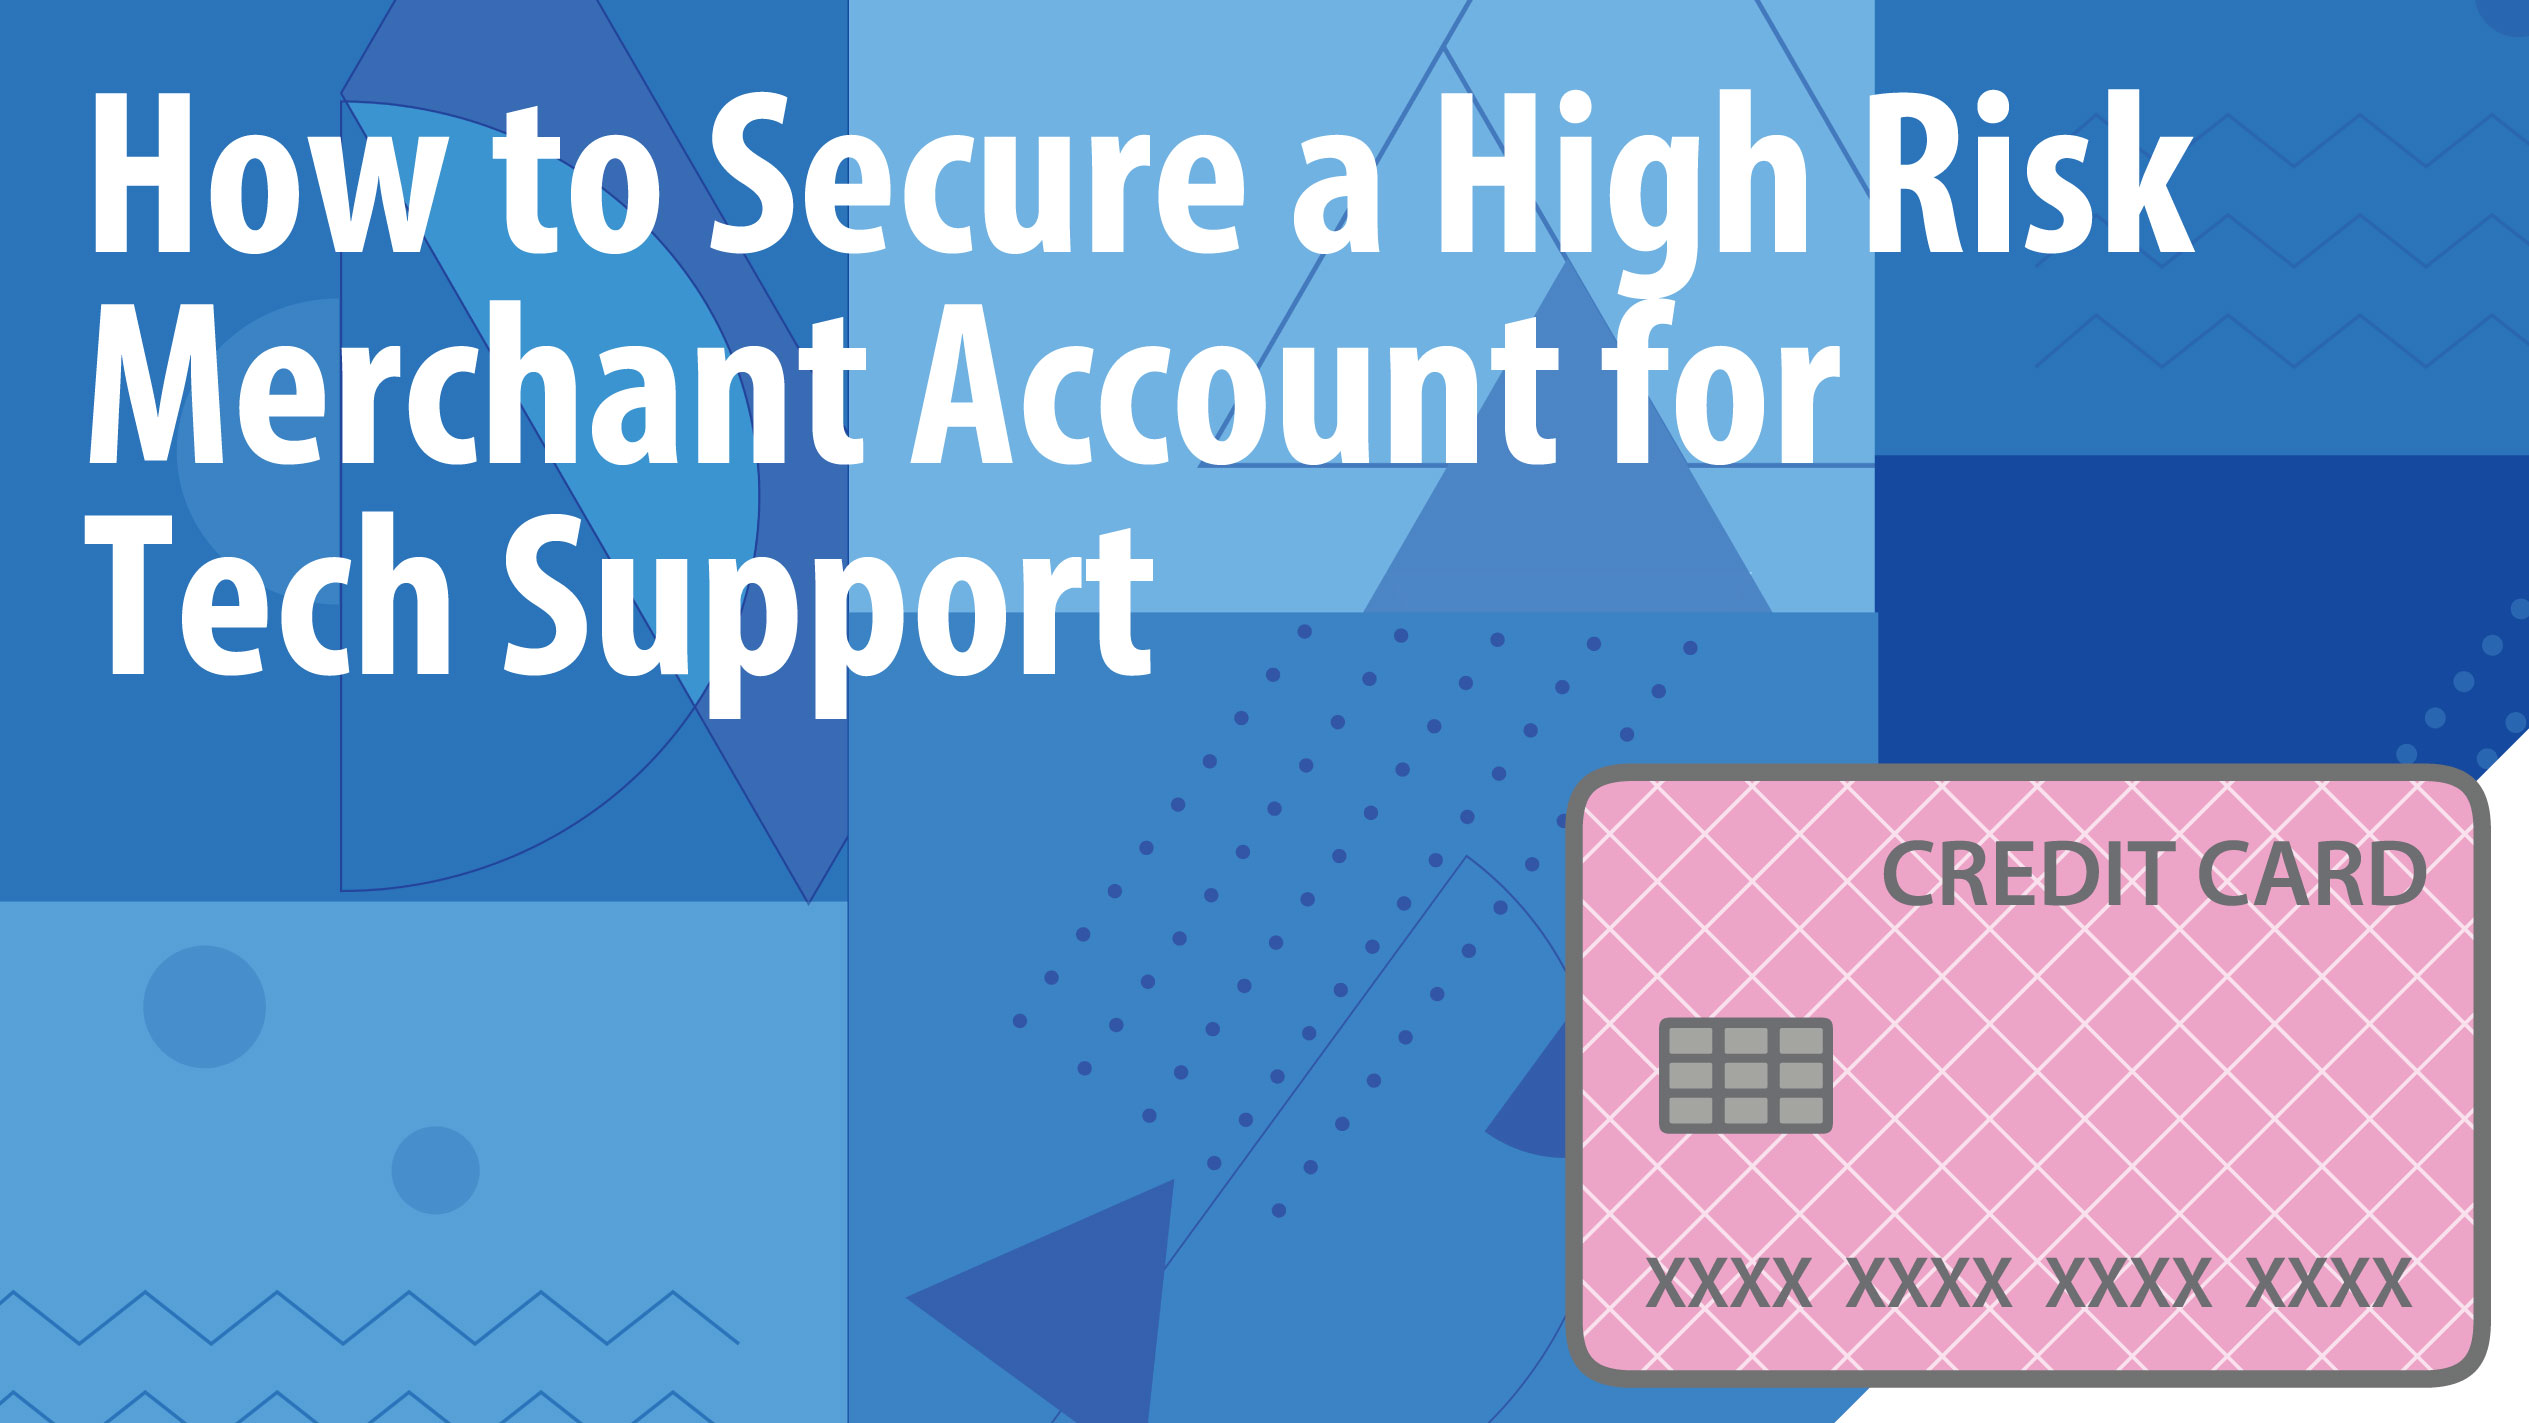 How to Secure a High Risk Merchant Account for Technical Support